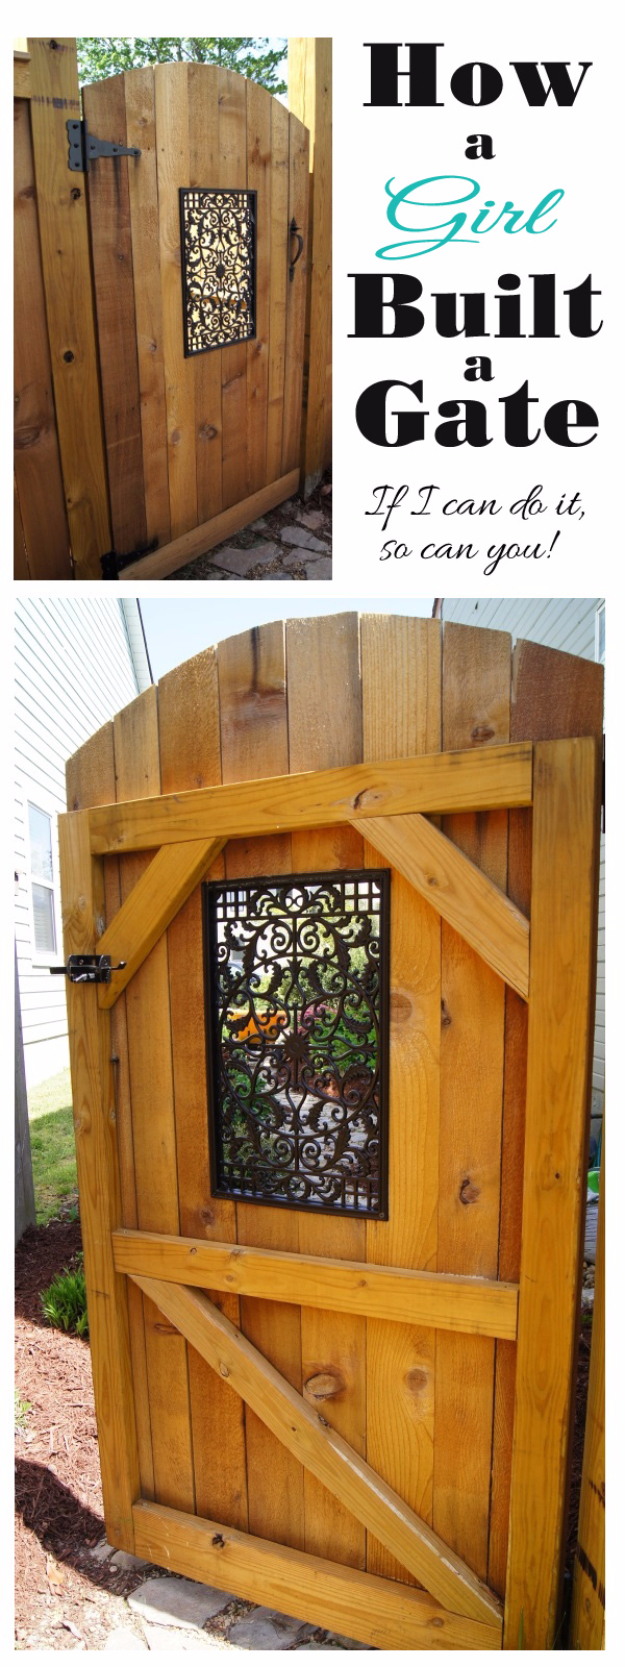 DIY Fences and Gates - Easy DIY Gate - How To Make Easy Fence and Gate Project for Backyard and Home - Step by Step Tutorial and Ideas for Painting, Updating and Making Fences and DIY Gate - Cool Outdoors and Yard Projects http://diyjoy.com/diy-fences-gates